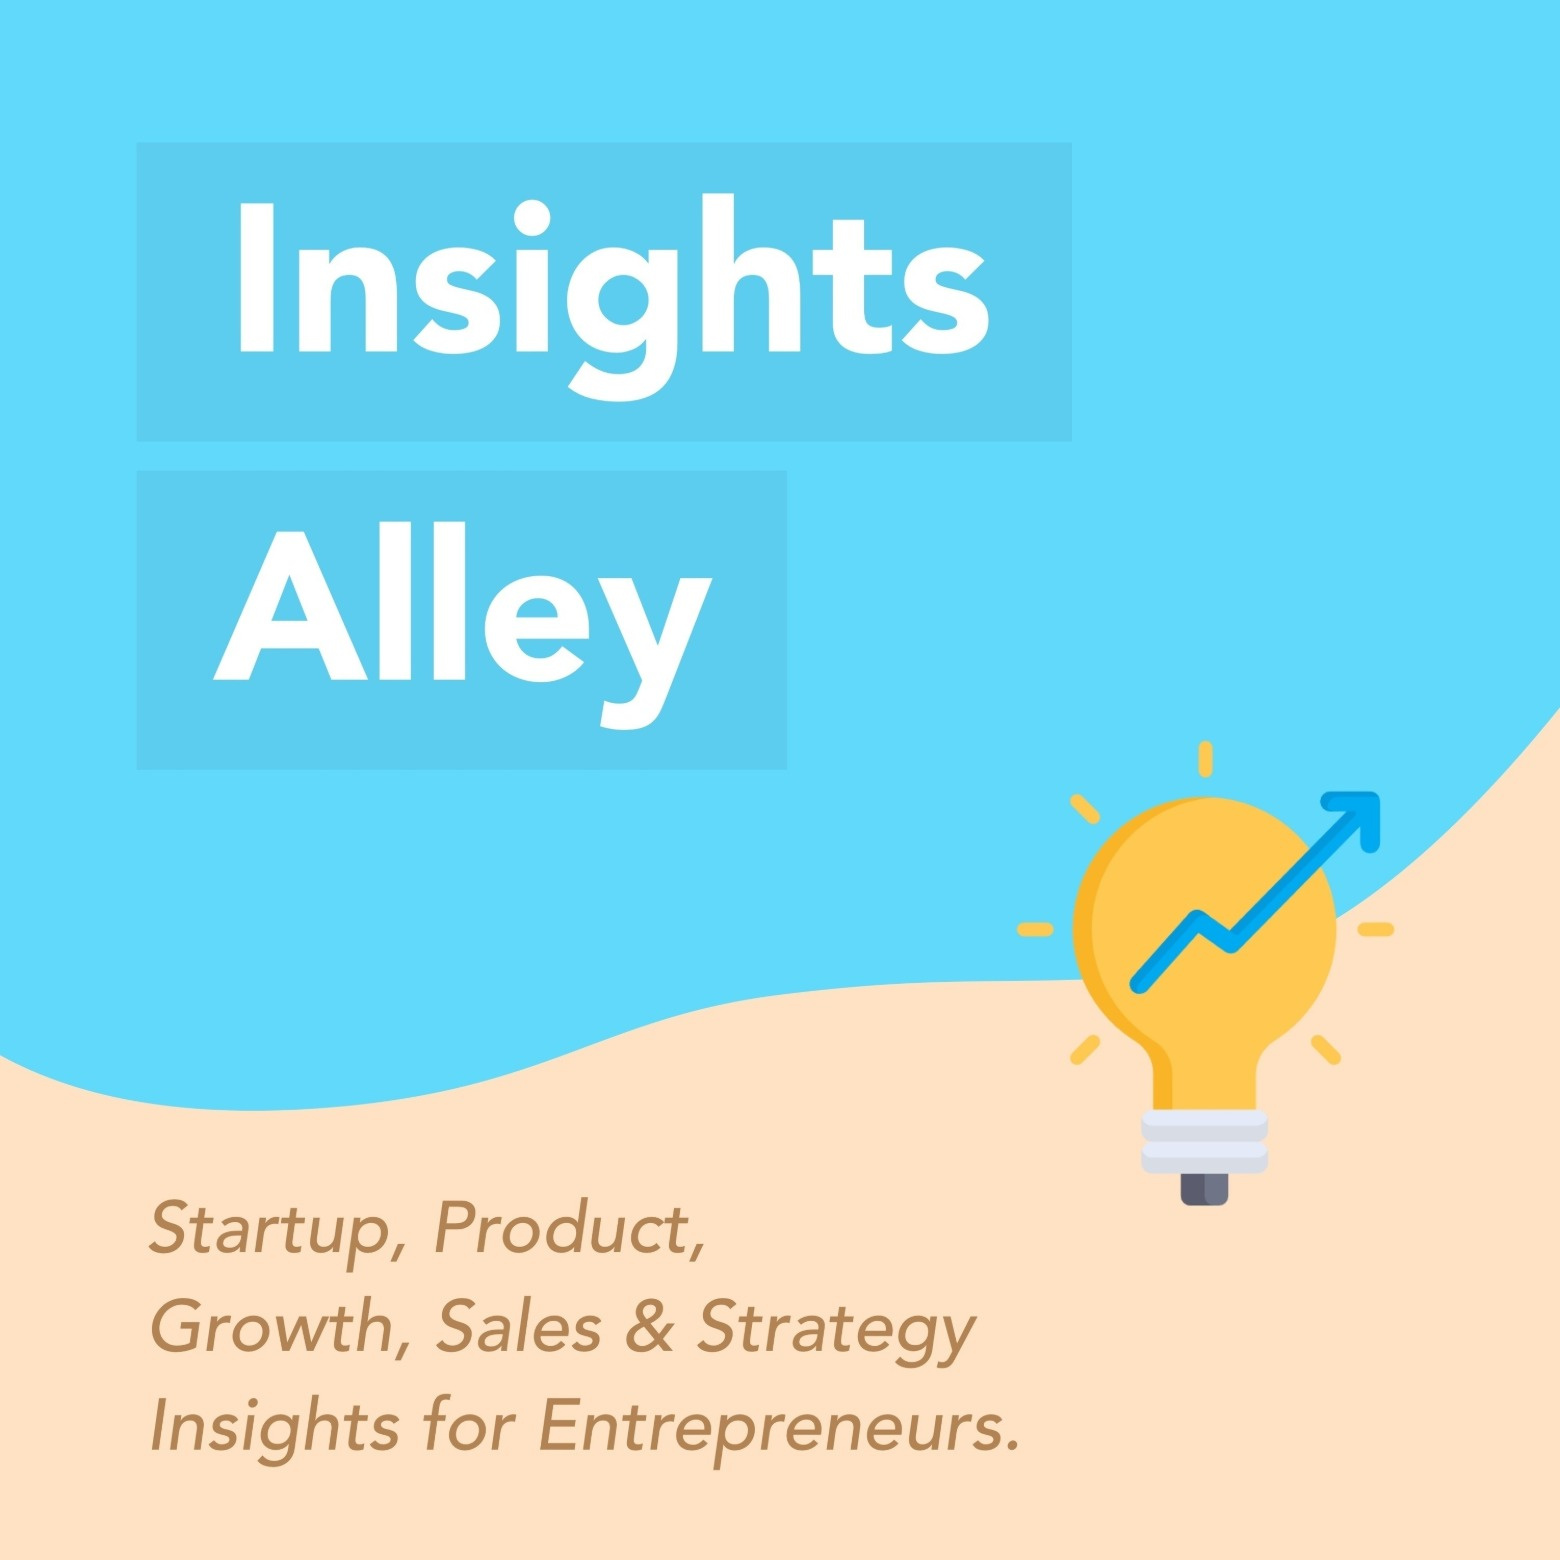 Insights Alley